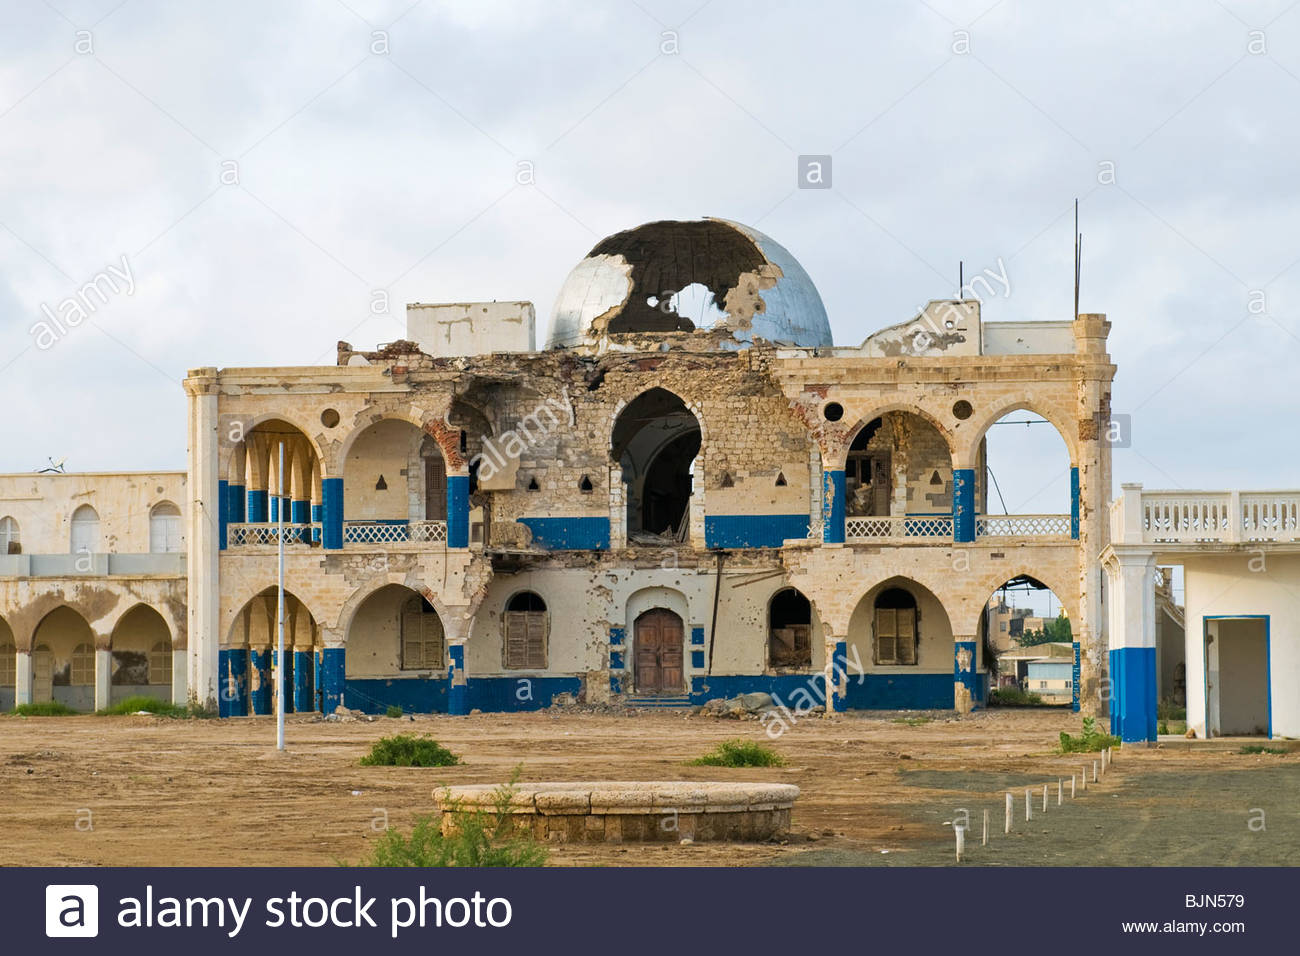 Imperial Palace Massawa, Imperial palace, Massawa, Eritrea Stock Photo, Royalty Free Image ...